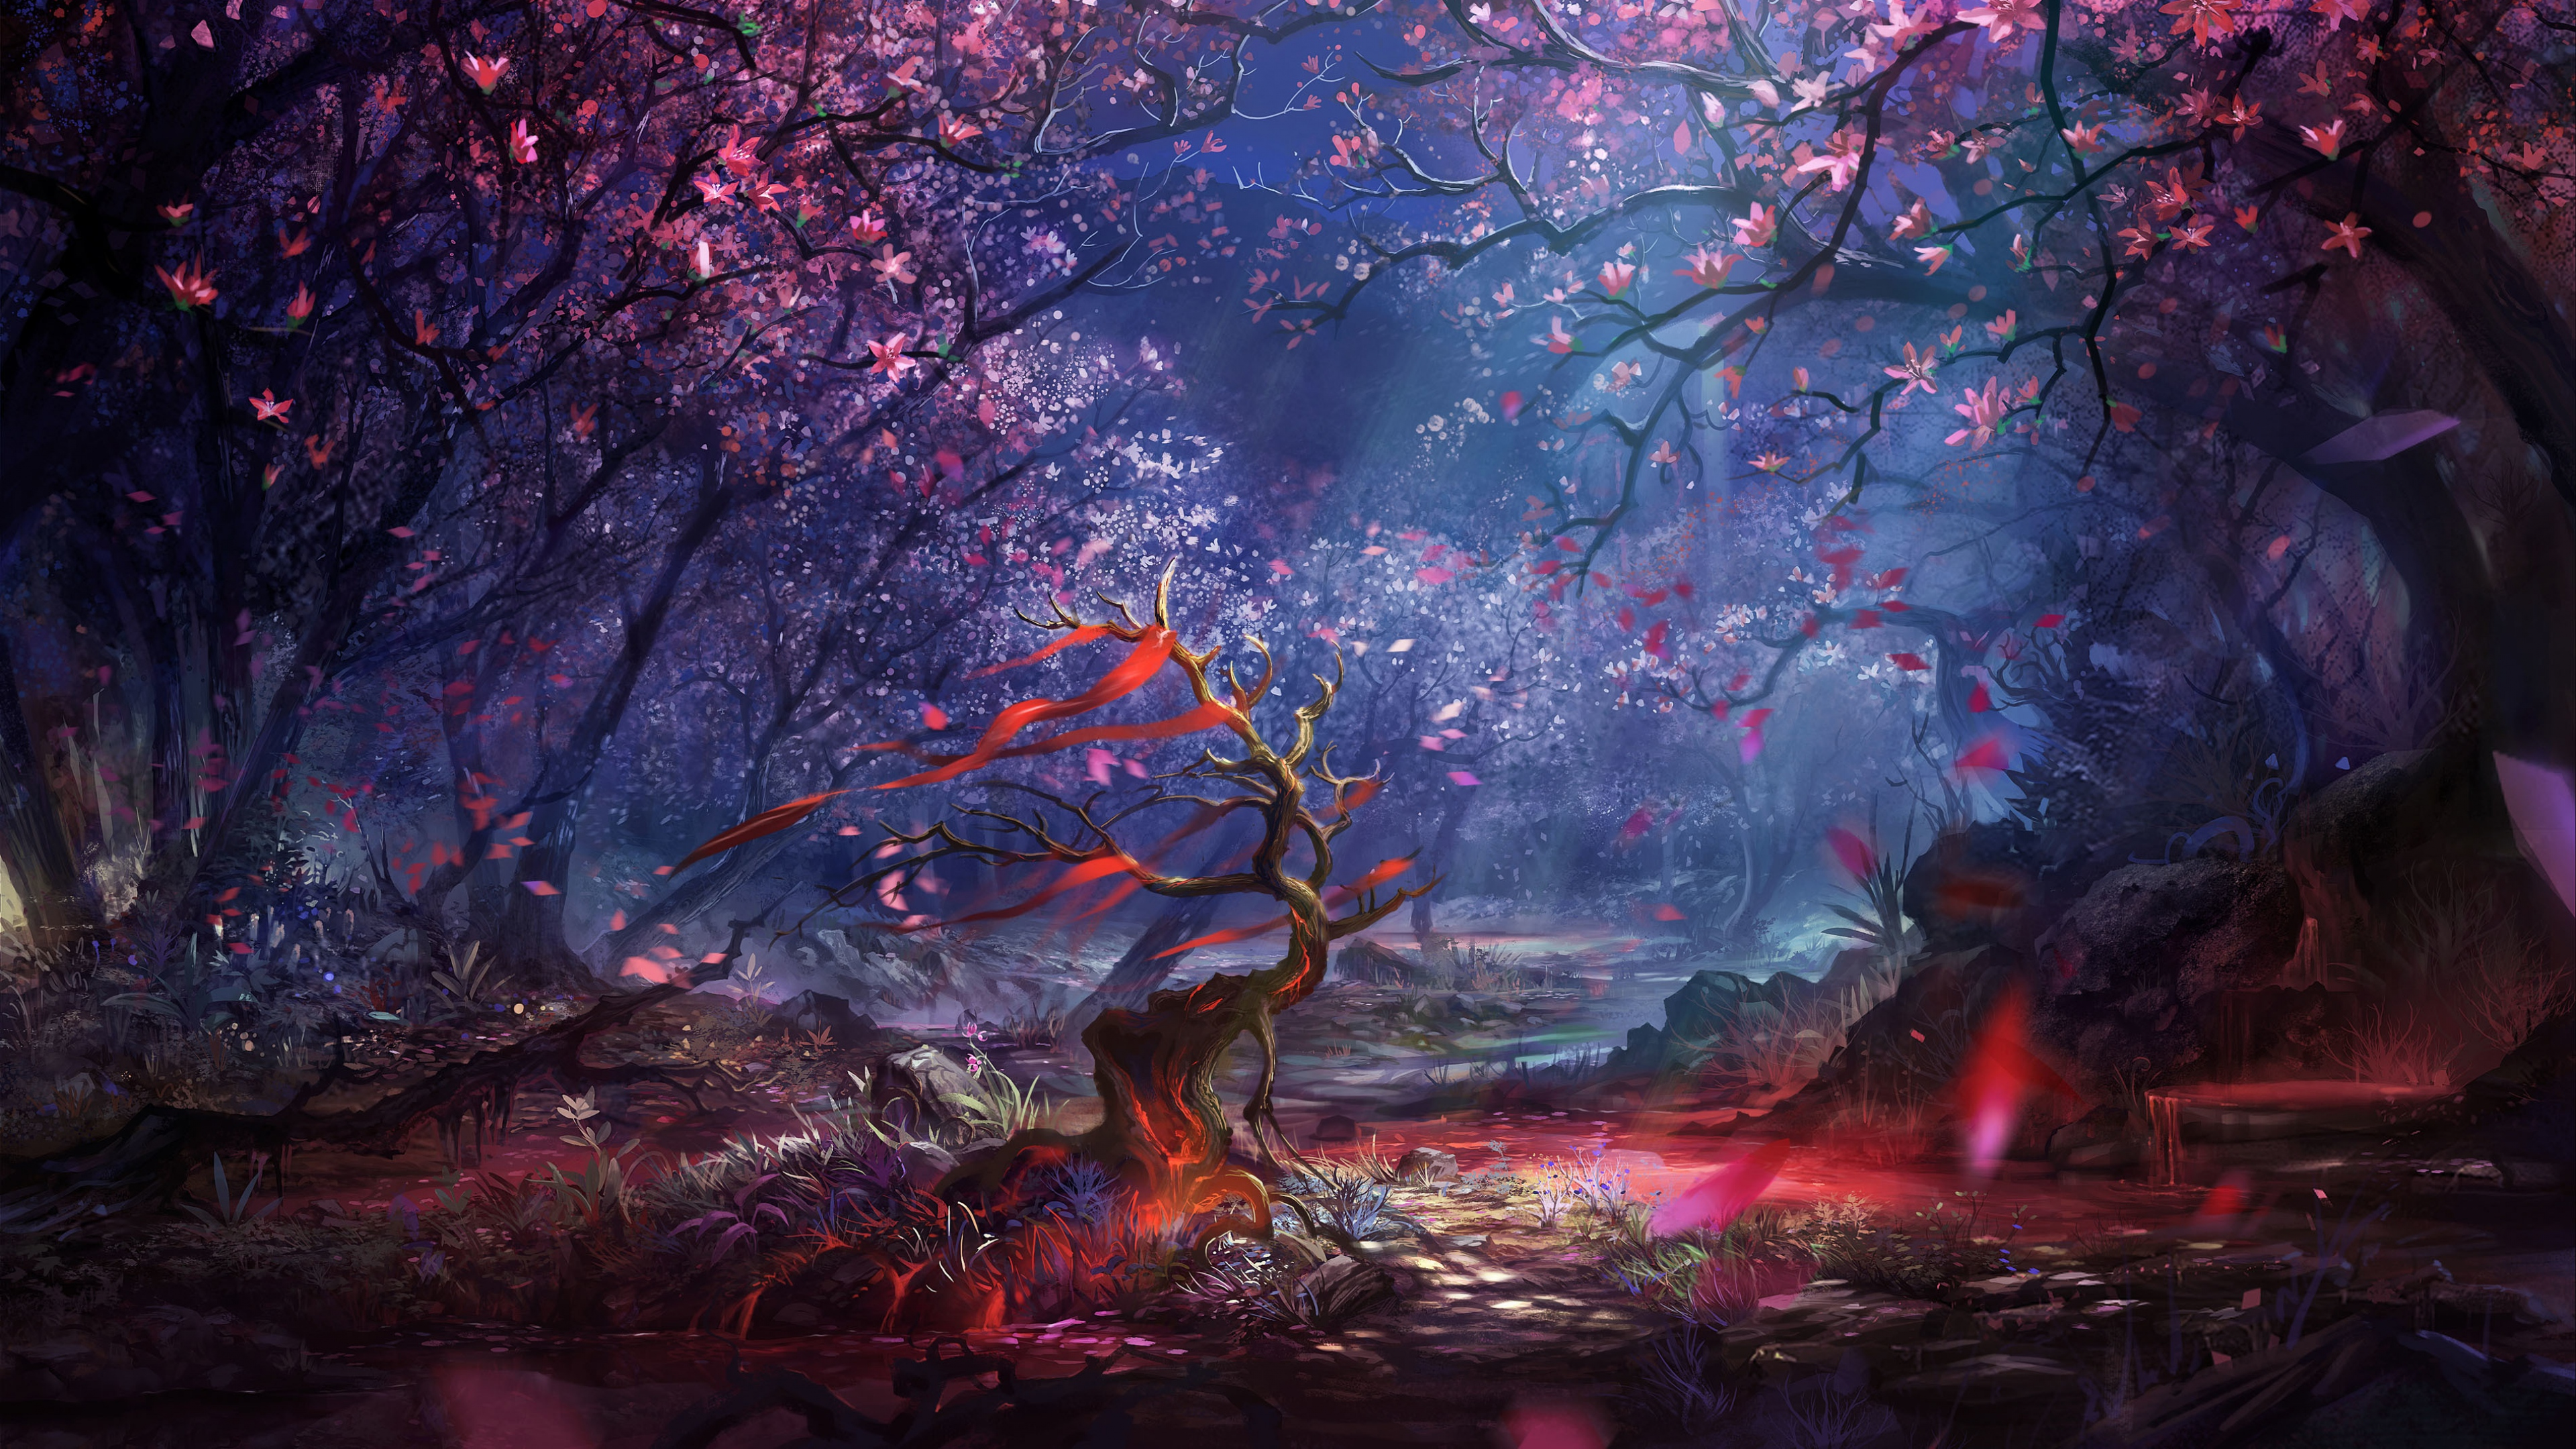 Stunning Hd Fantasy Gaming Desktop Wallpapers: Beautiful Forest Art, HD Artist, 4k Wallpapers, Images